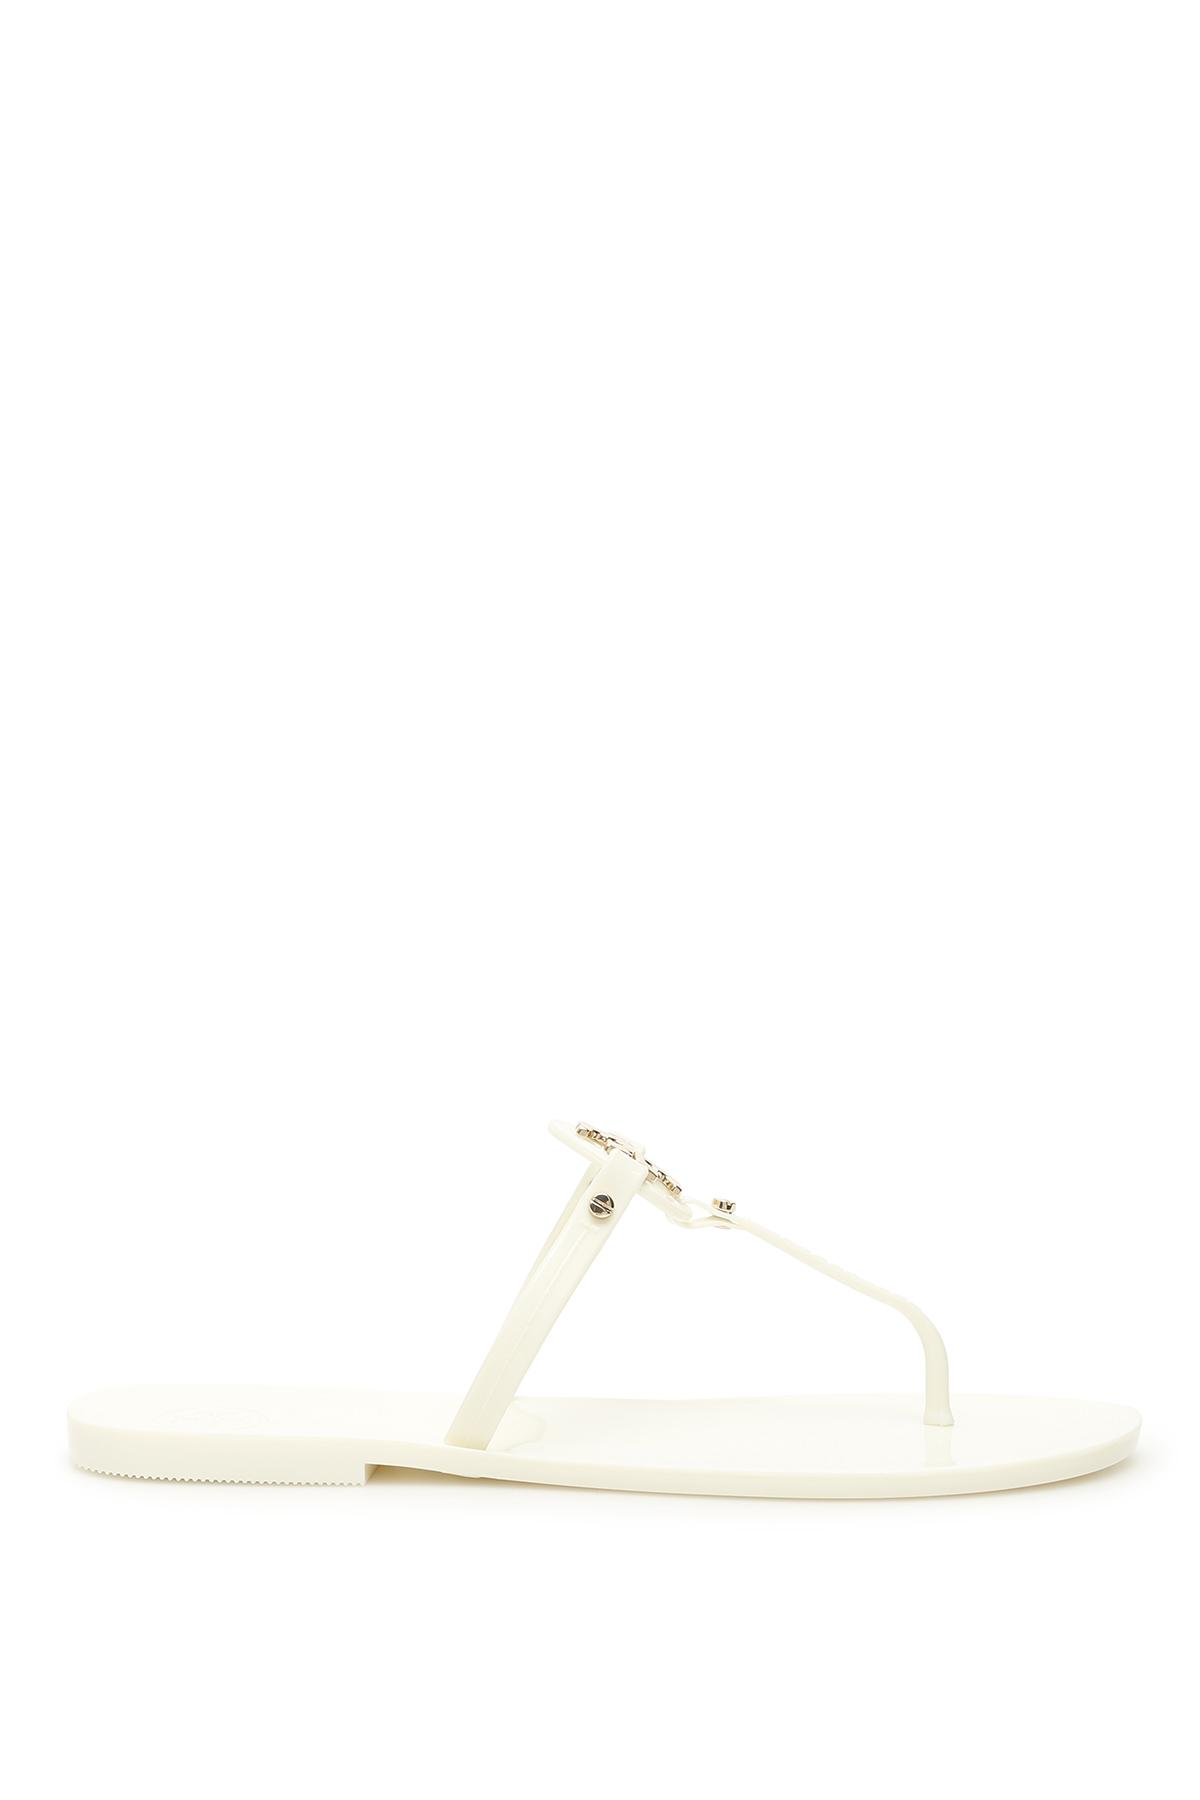 1eacddf085fe Tory Burch Sandals Miller price in Singapore